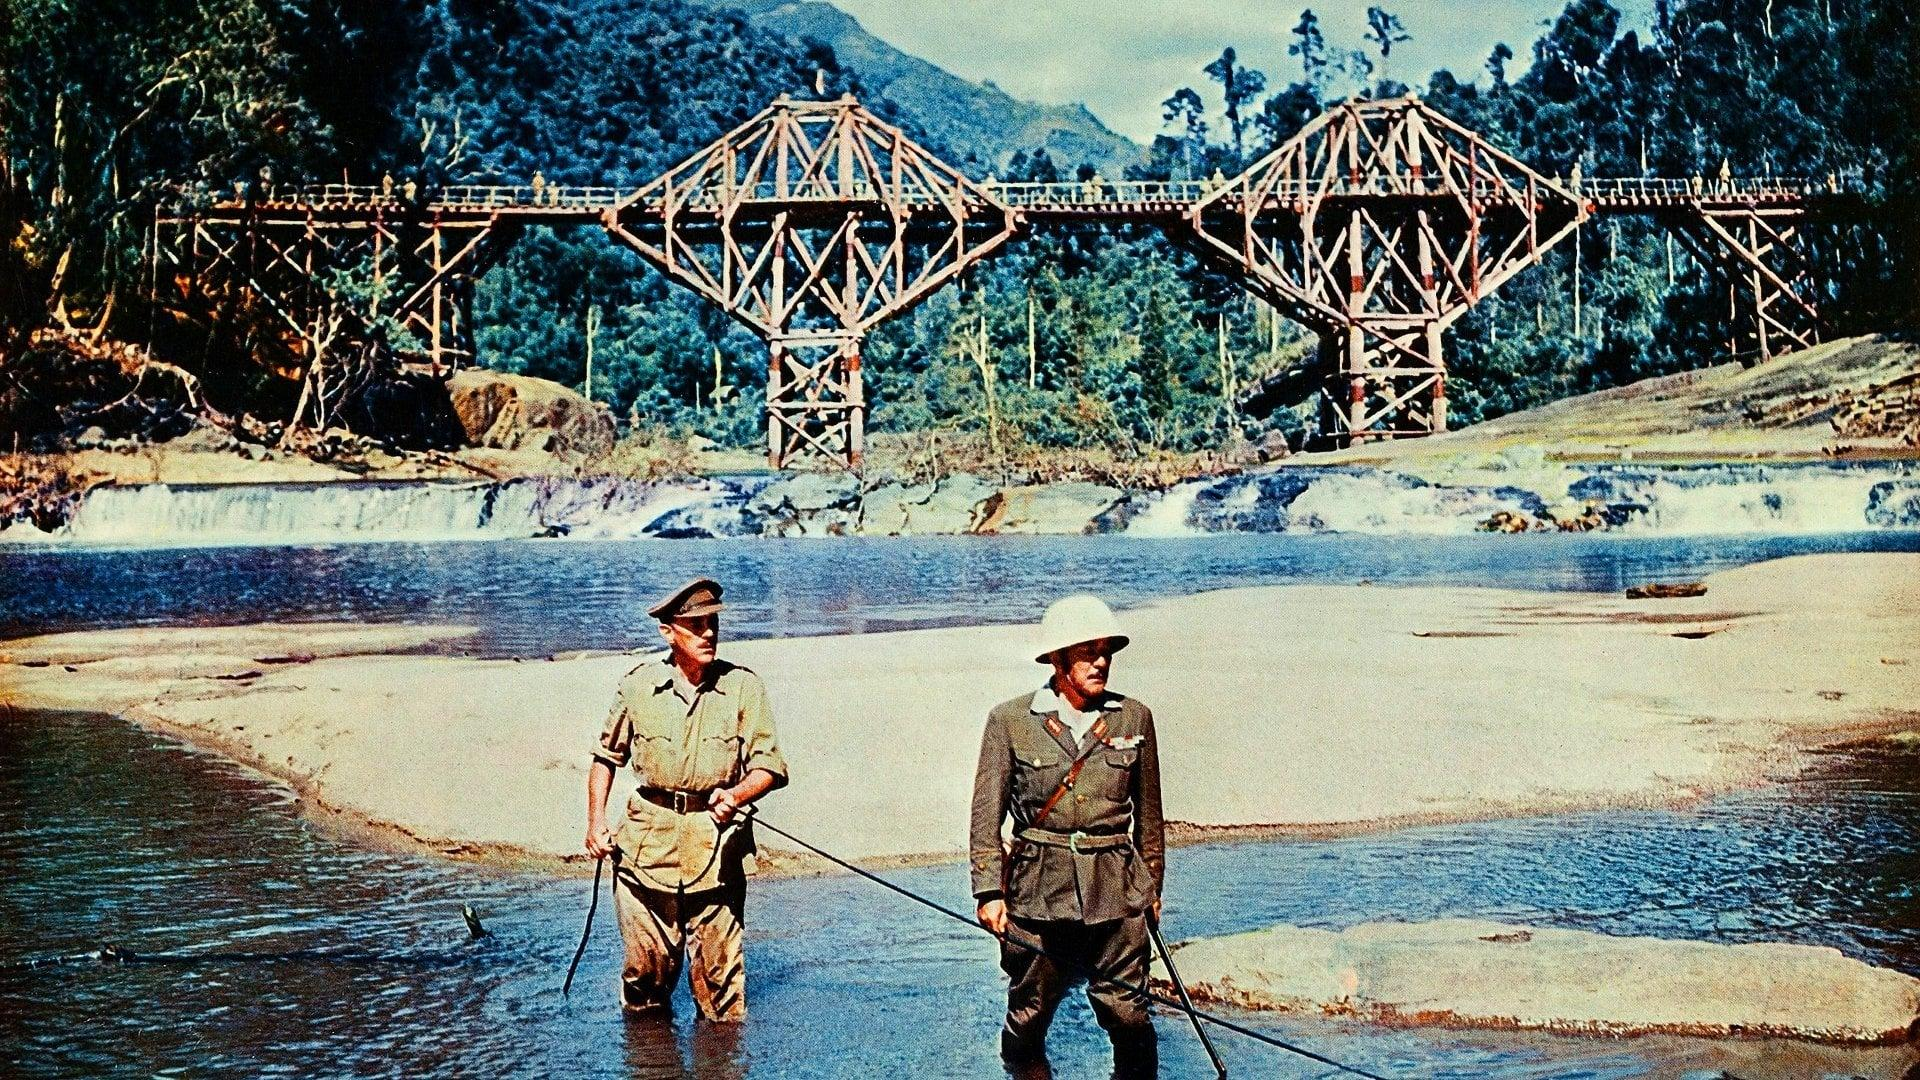 Explore the iconic location of The Bridge on the River Kwai ...